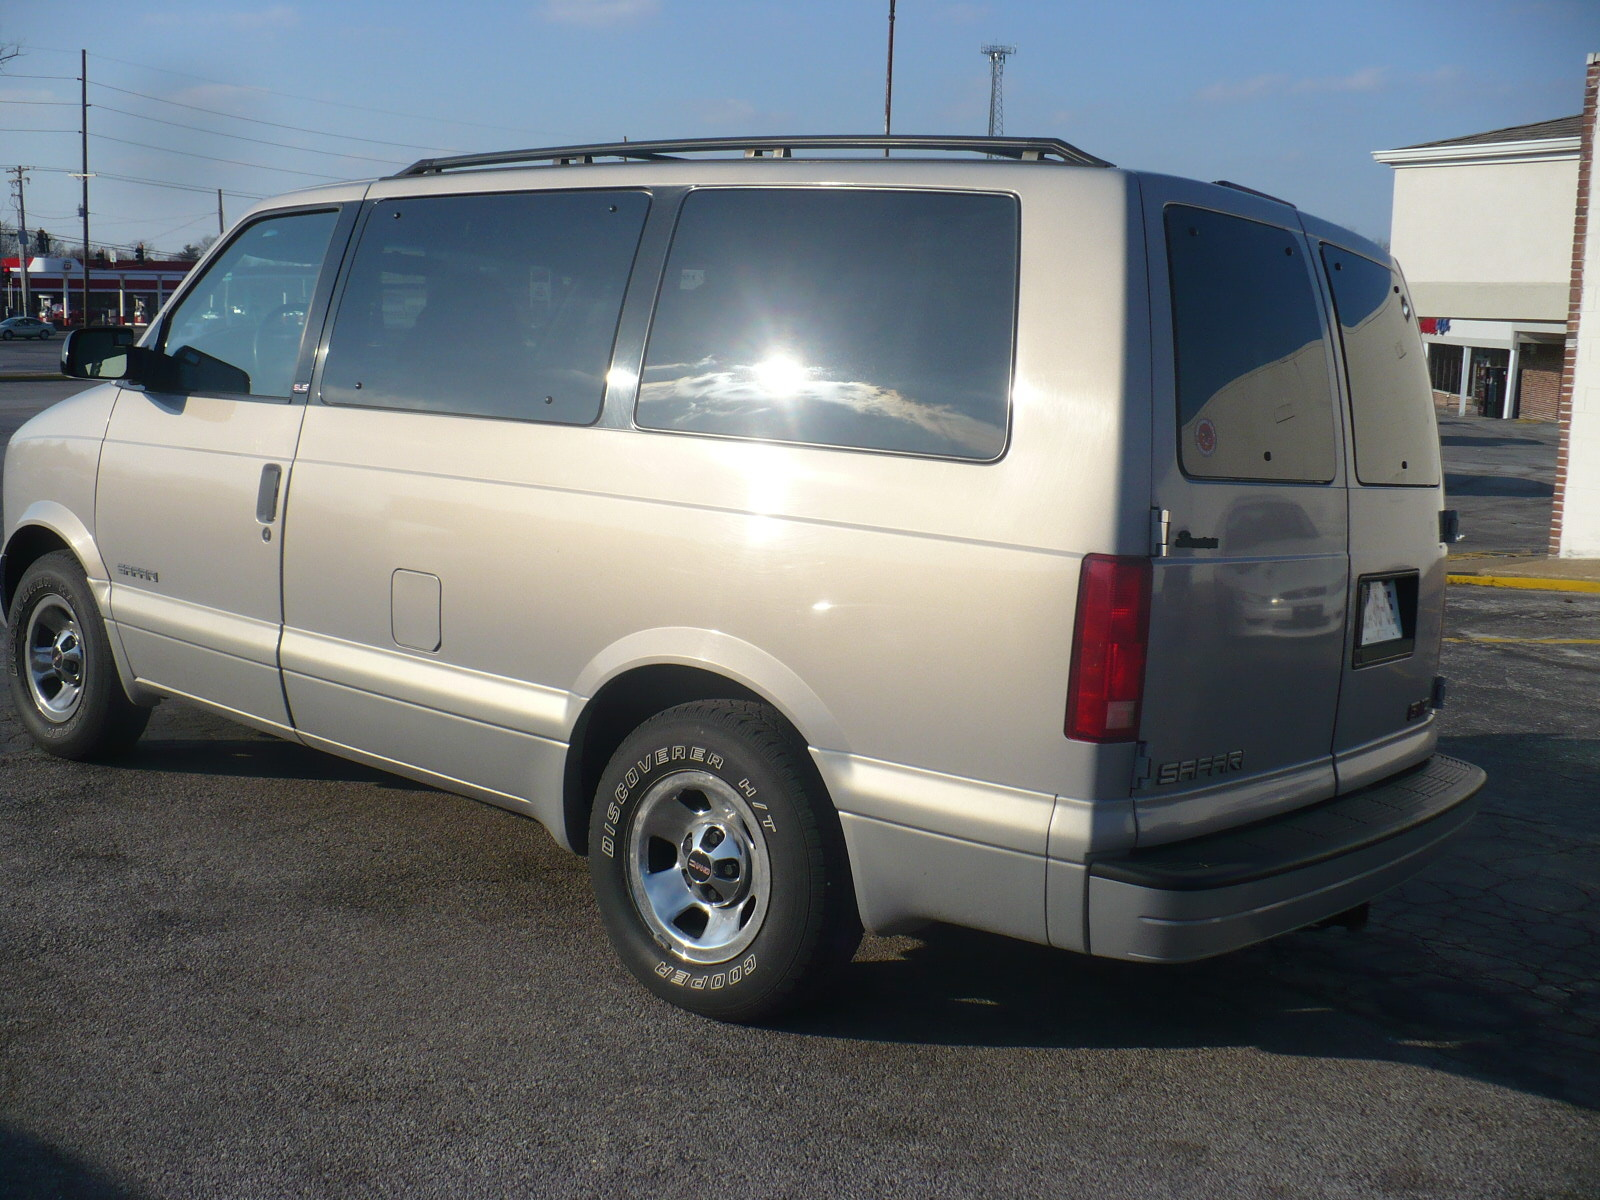 Picture of 1999 GMC Safari 3 Dr SLE Passenger Van Extended